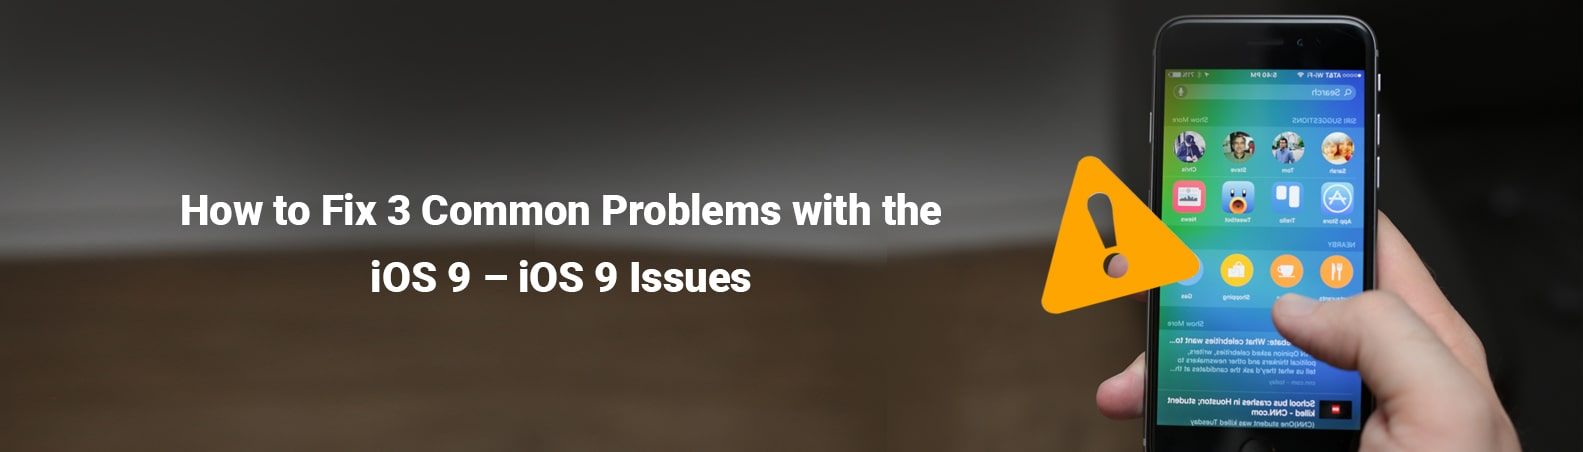 How to Fix 3 Common Problems with the iOS 9 - iOS 9 Issues